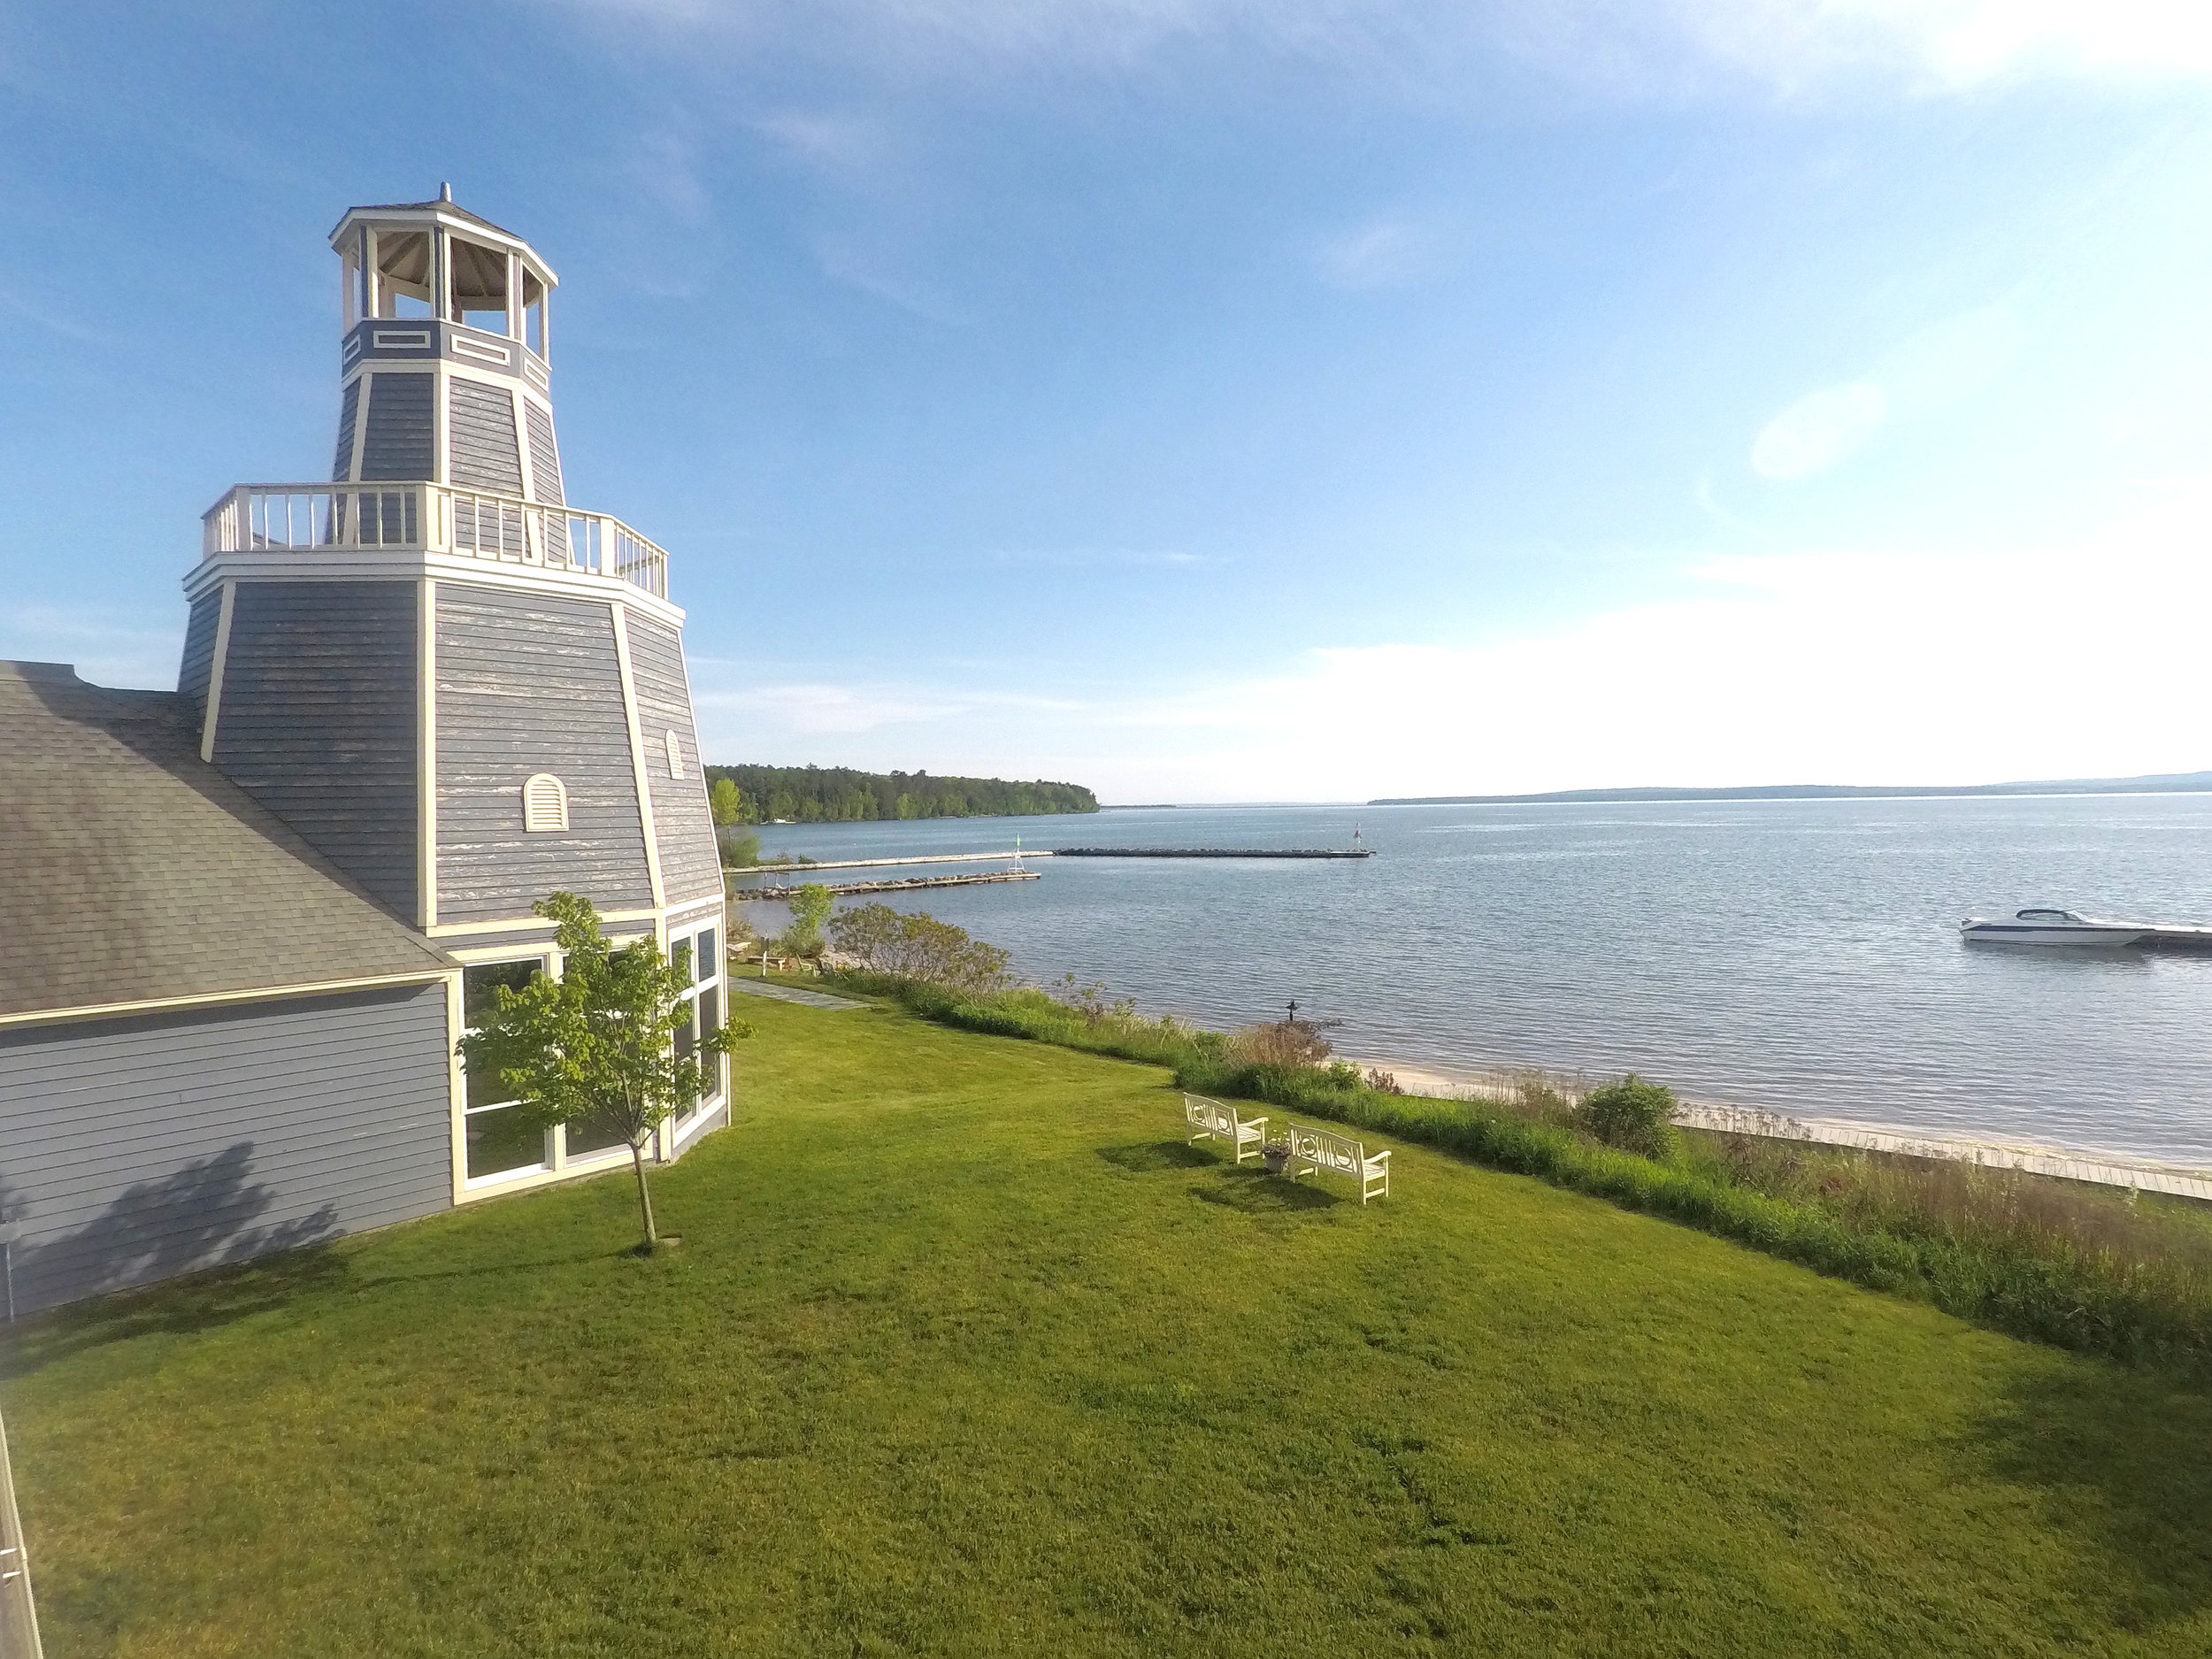 View from the Inn on Madeline Island on Lake Superior